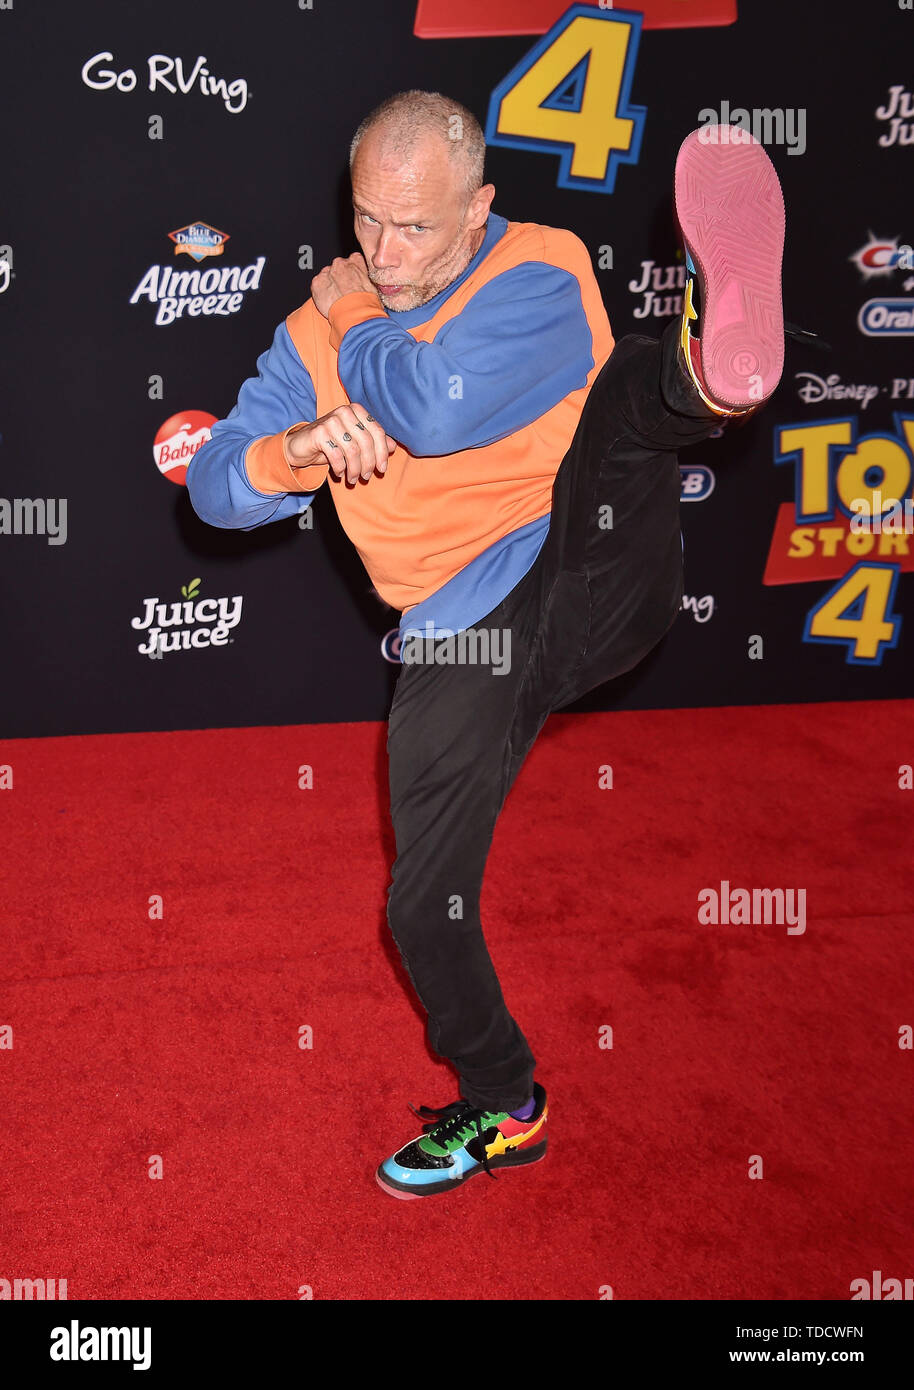 HOLLYWOOD, CA - JUNE 11: Flea arrives at the premiere of Disney and Pixar's 'Toy Story 4' at the El Capitan Theatre on June 11, 2019 in Los Angeles, California. - Stock Image